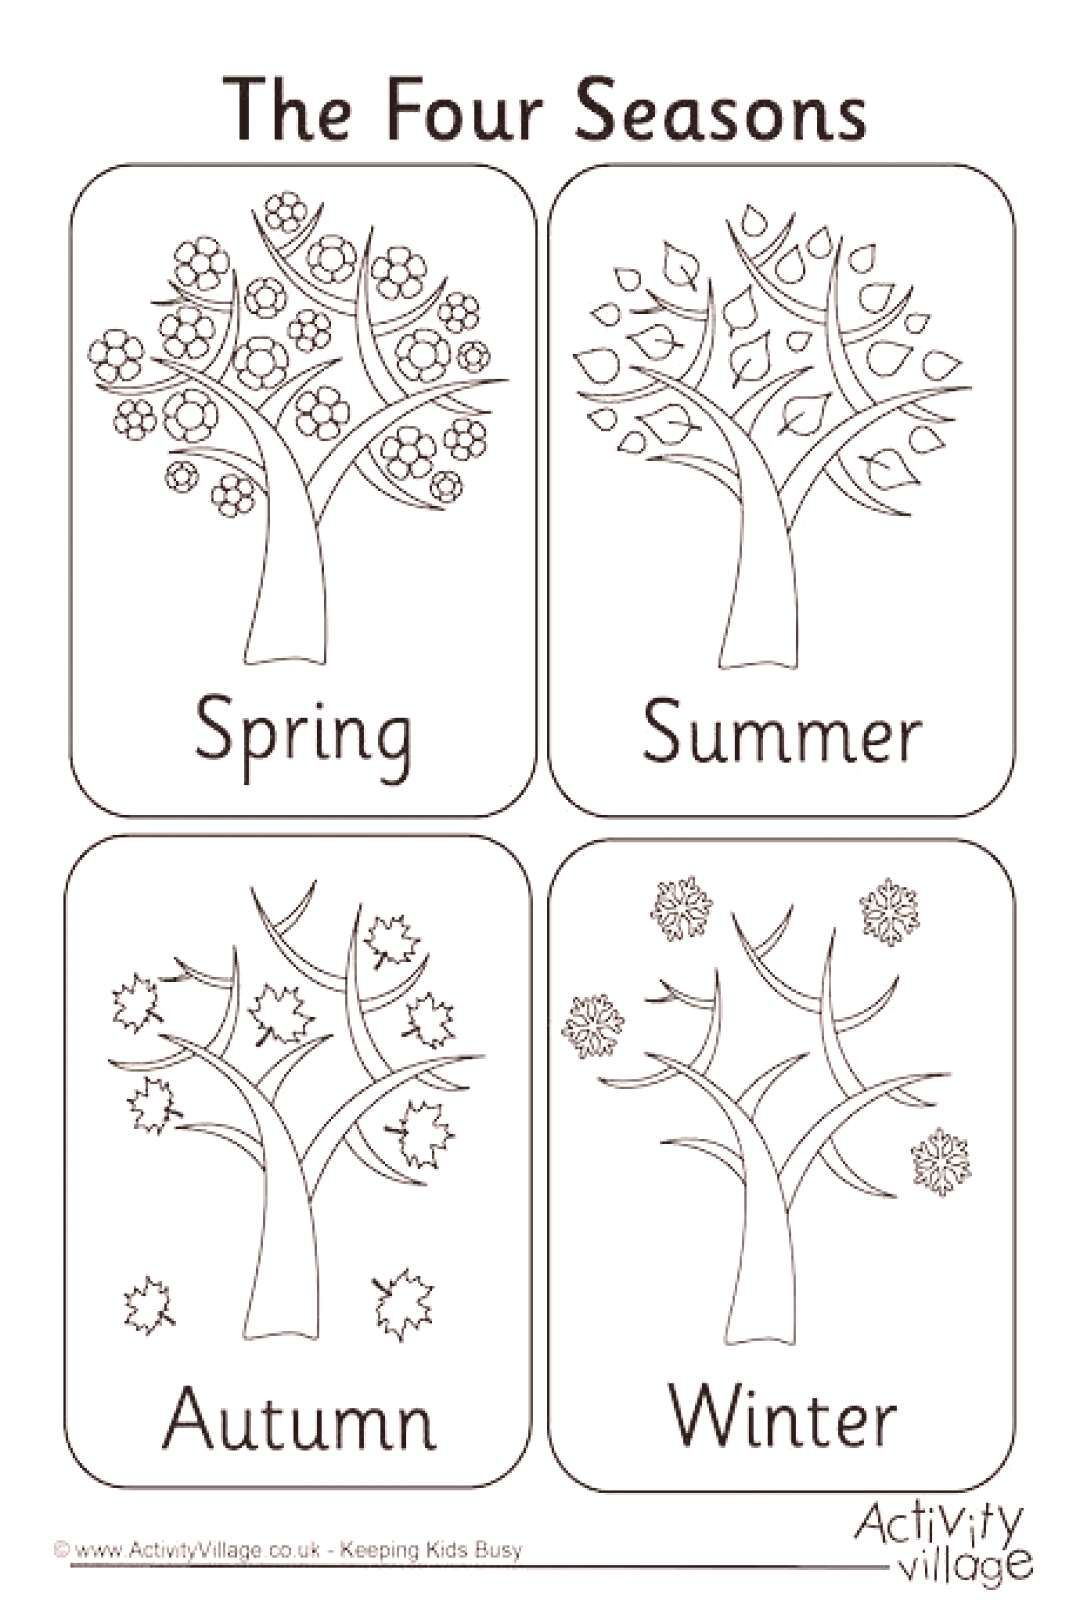 Colouring Seasons Four Page Four Seasons Colouring Pageyou Can Find Four Seasons And More On Our Seasons Worksheets Seasons Kindergarten Seasons Preschool [ 1620 x 1080 Pixel ]